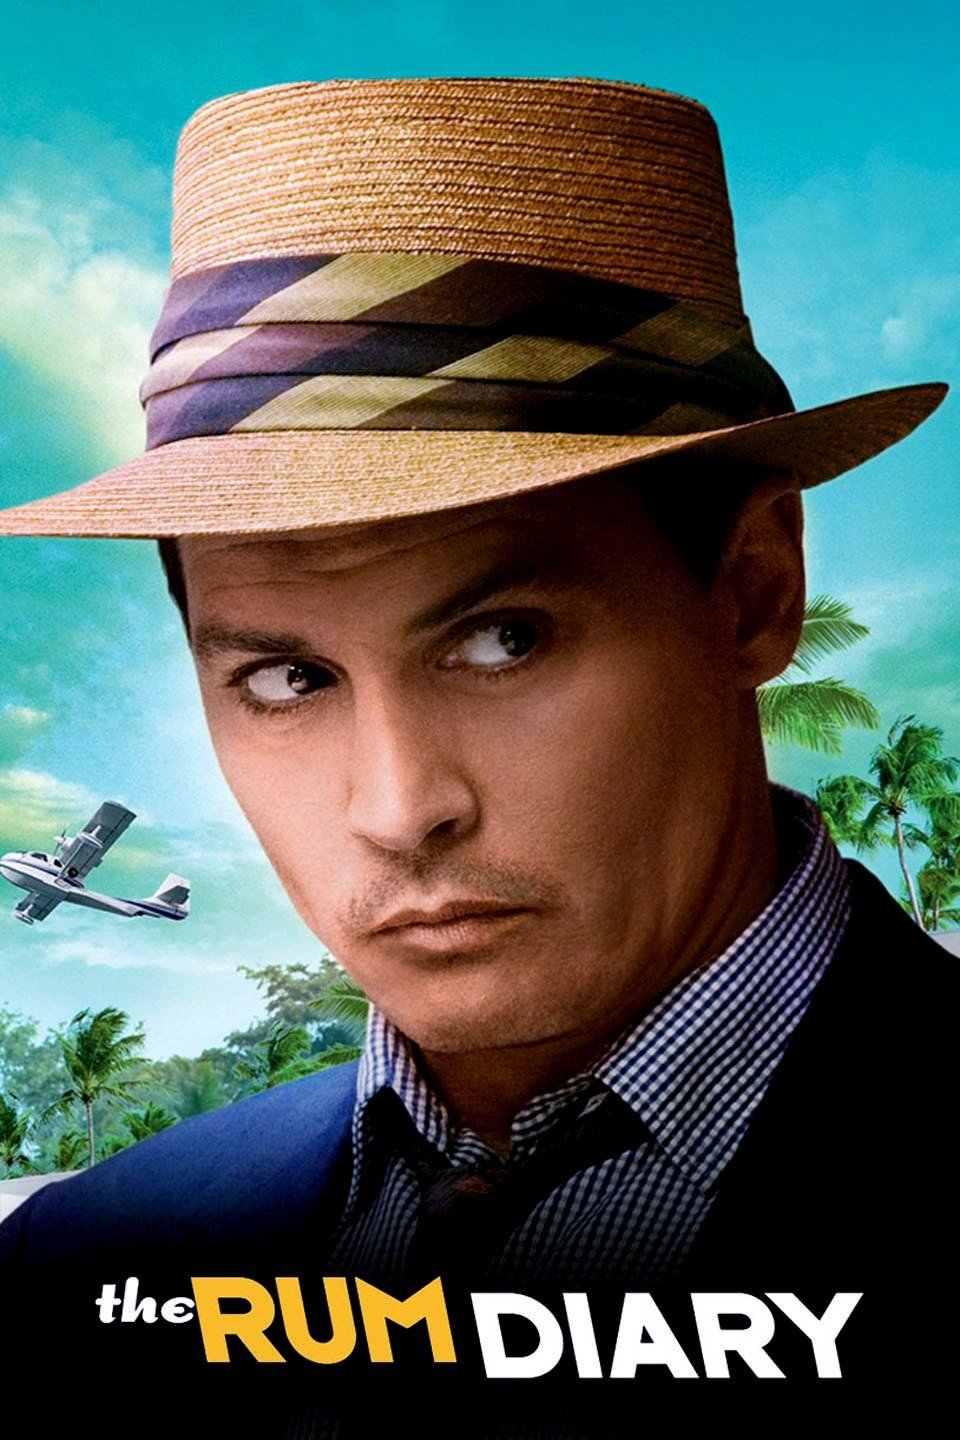 the rum diary hindi dubbed